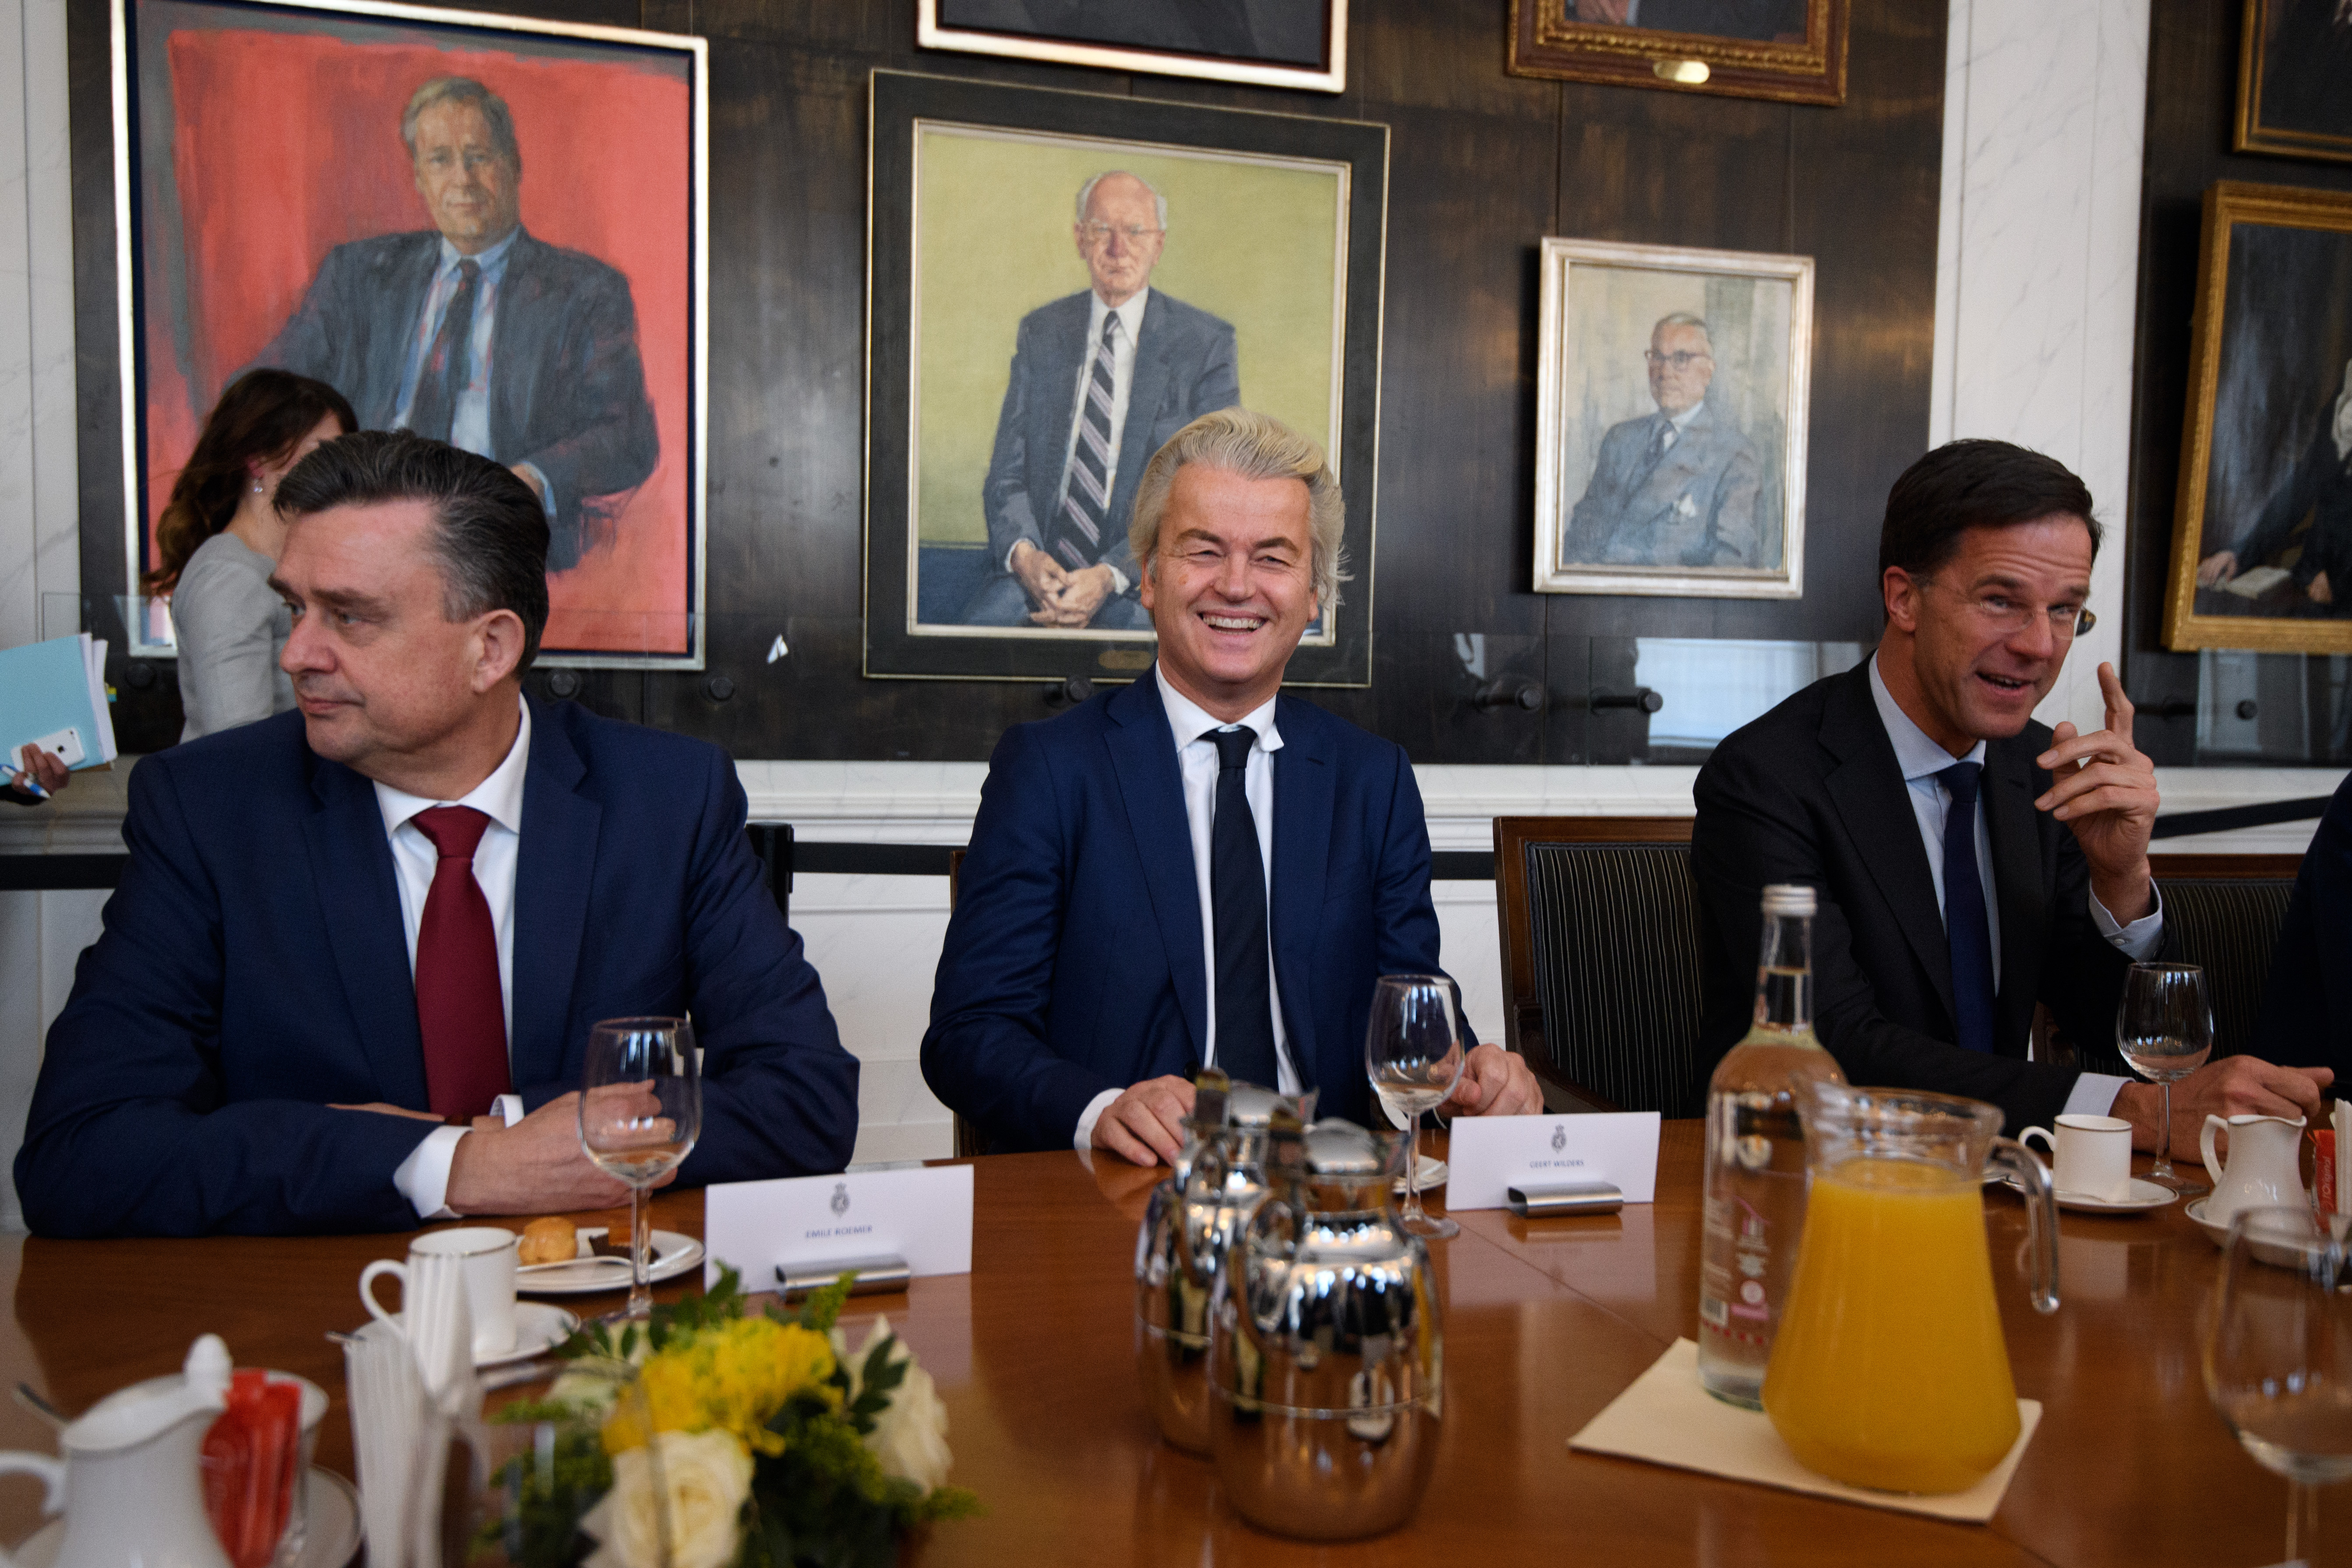 THE HAGUE, NETHERLANDS - MARCH 16:(L-R) Emile Roemer, leader of the Socialist Party; Party for Freedom (PVV) leader Geert Wilders and Dutch Prime Minister Mark Rutte attend a meeting of Dutch political party leaders at the House of Representatives to express their views on the formation of the cabinet, on March 16, 2017 in The Hague, Netherlands.